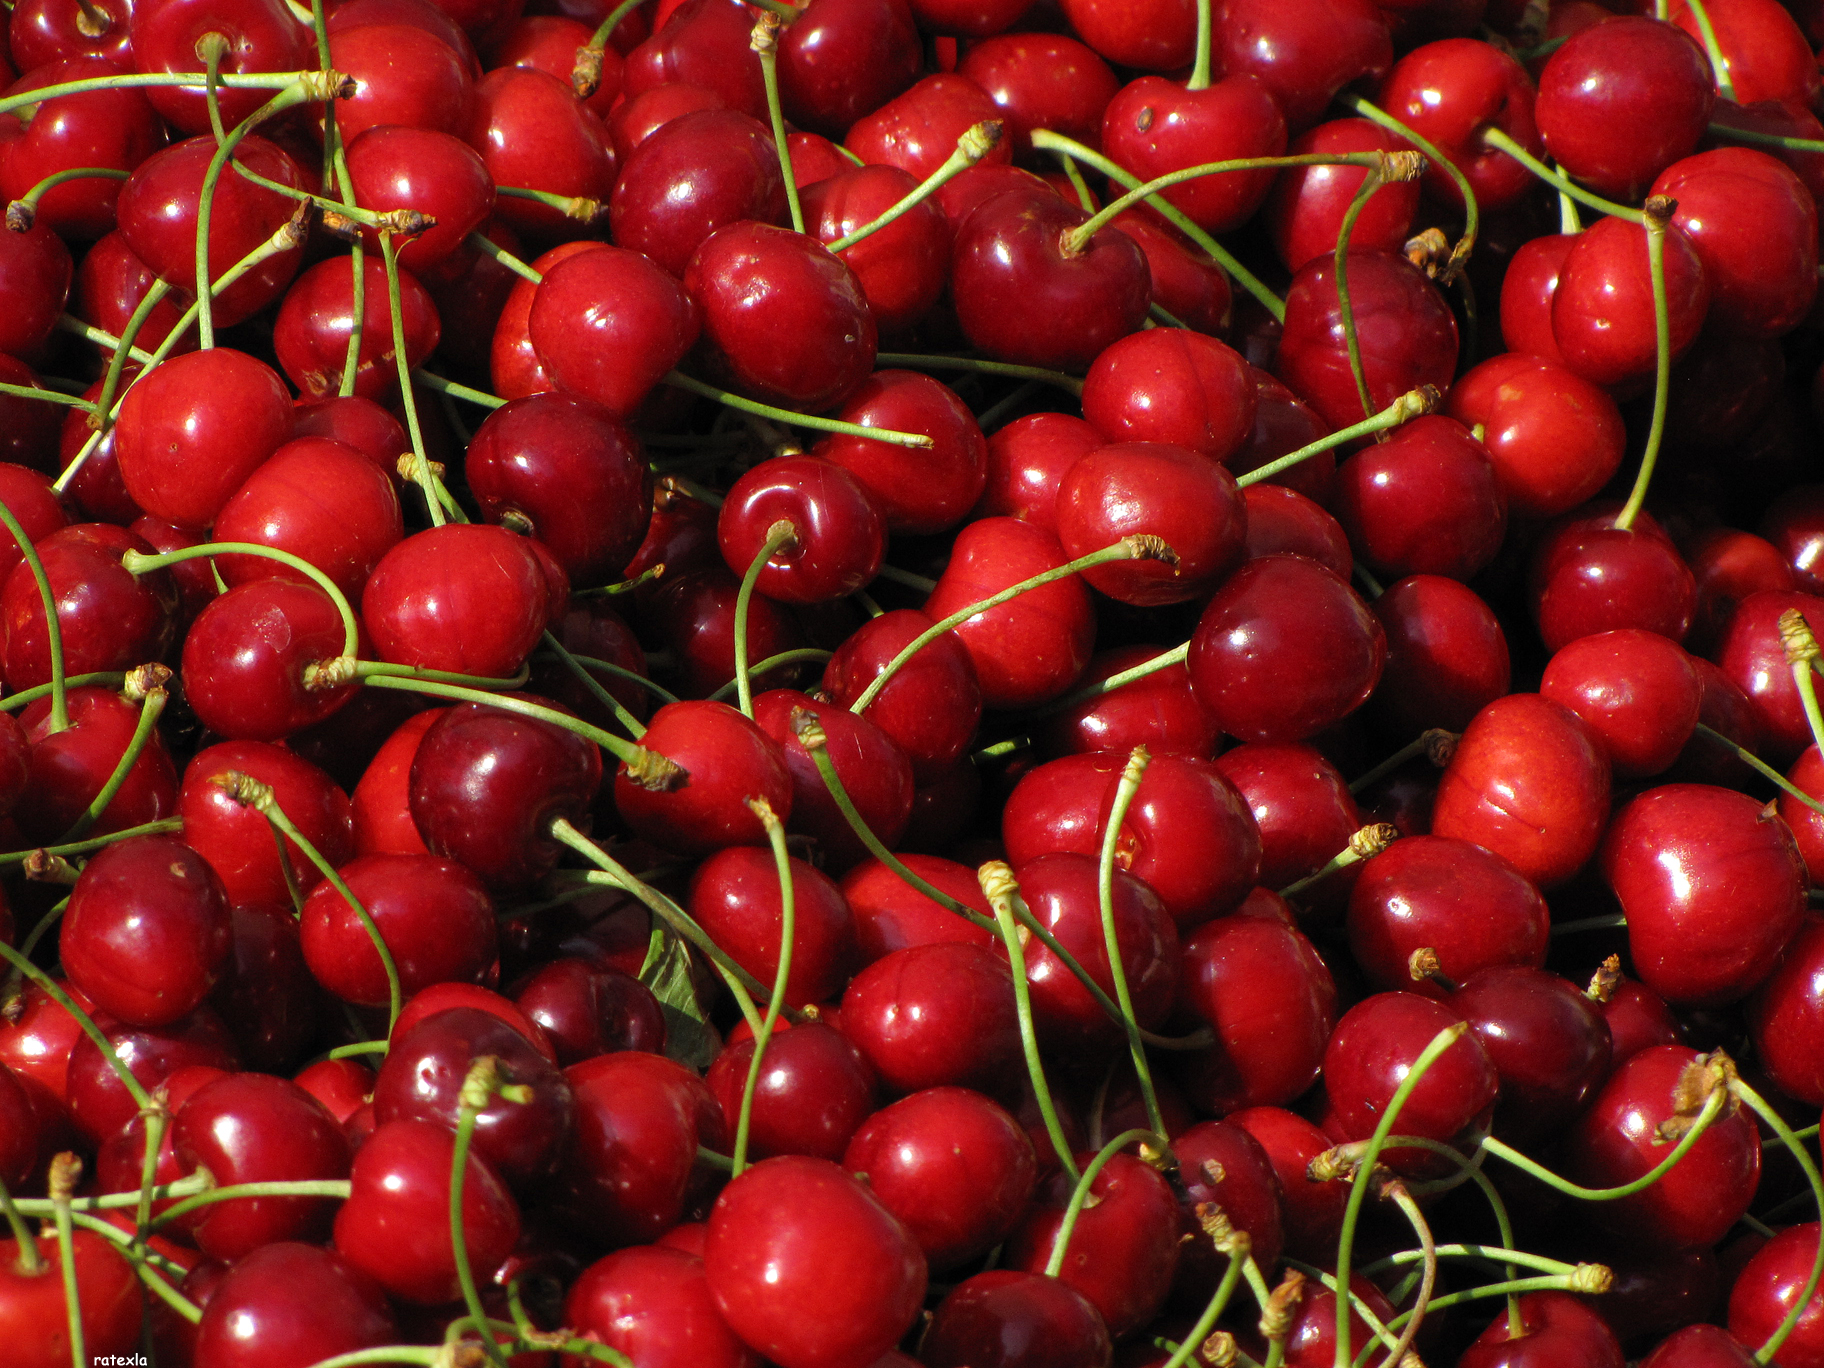 A beautiful pile of cherries, whom we should thank for the delicious drink that is cherry soda, from Wiki Commons